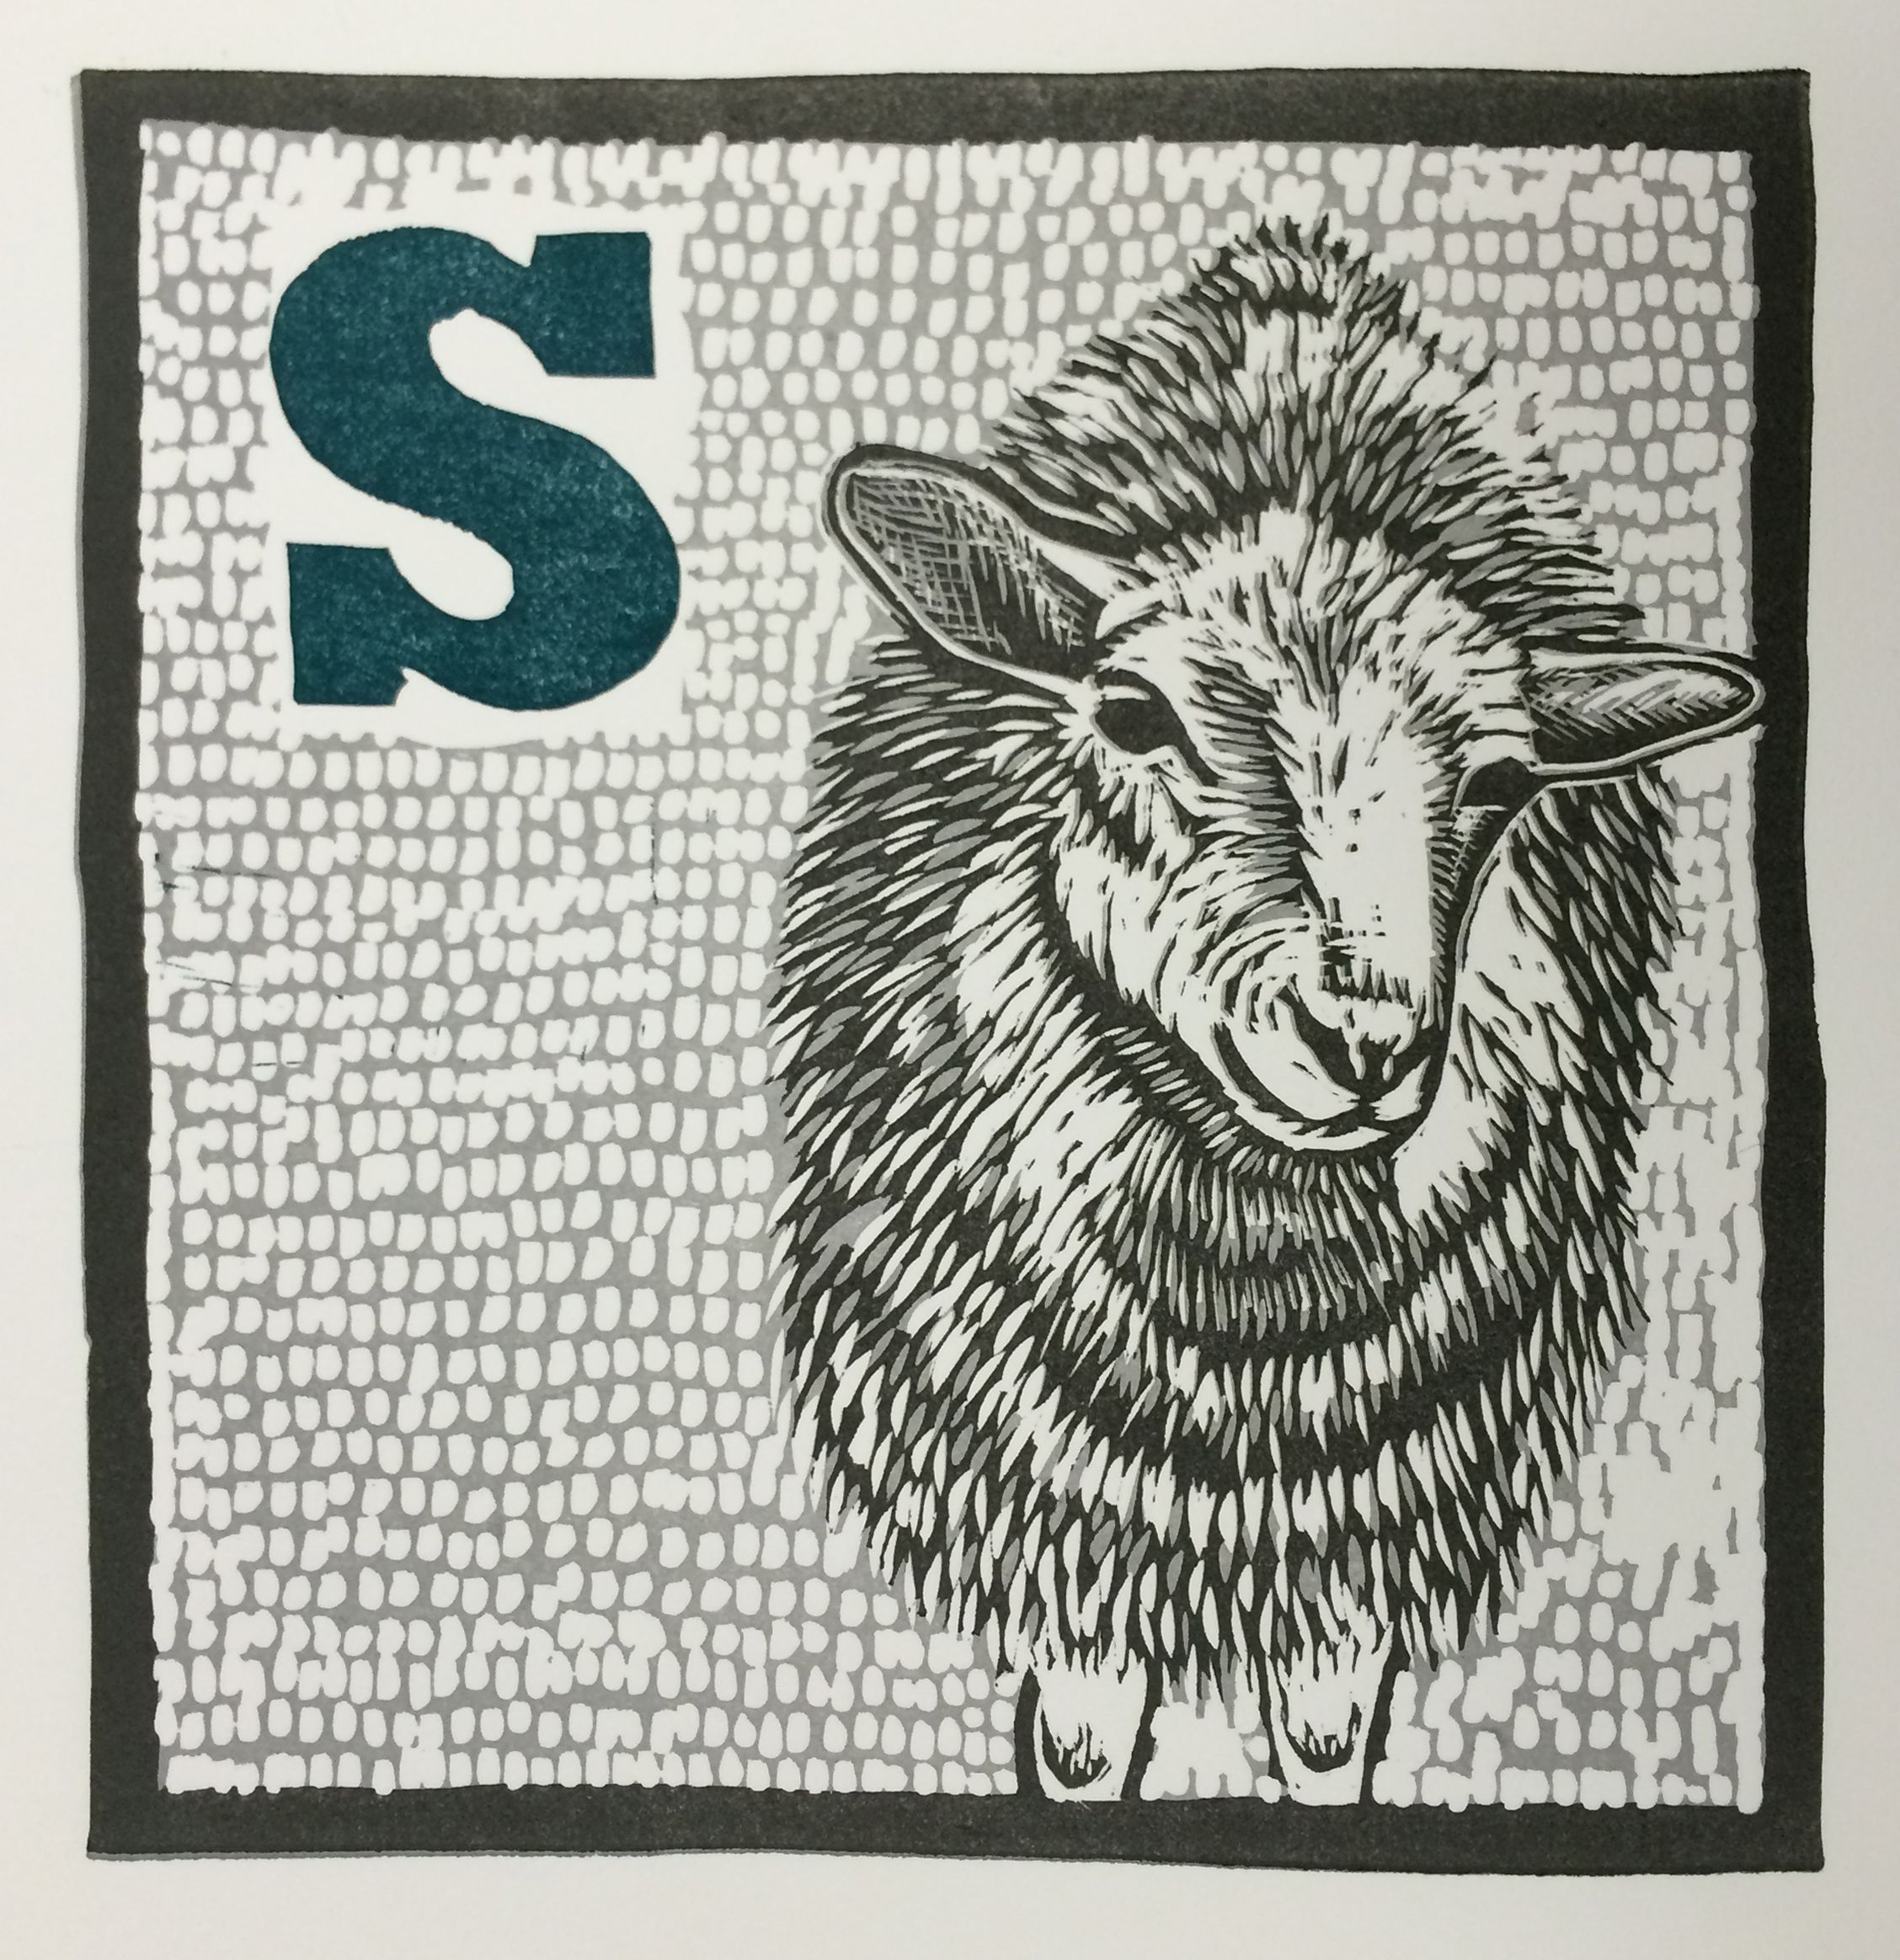 S Is For Sheep 3 Color Reductive Linoleum Block Print On 11x15